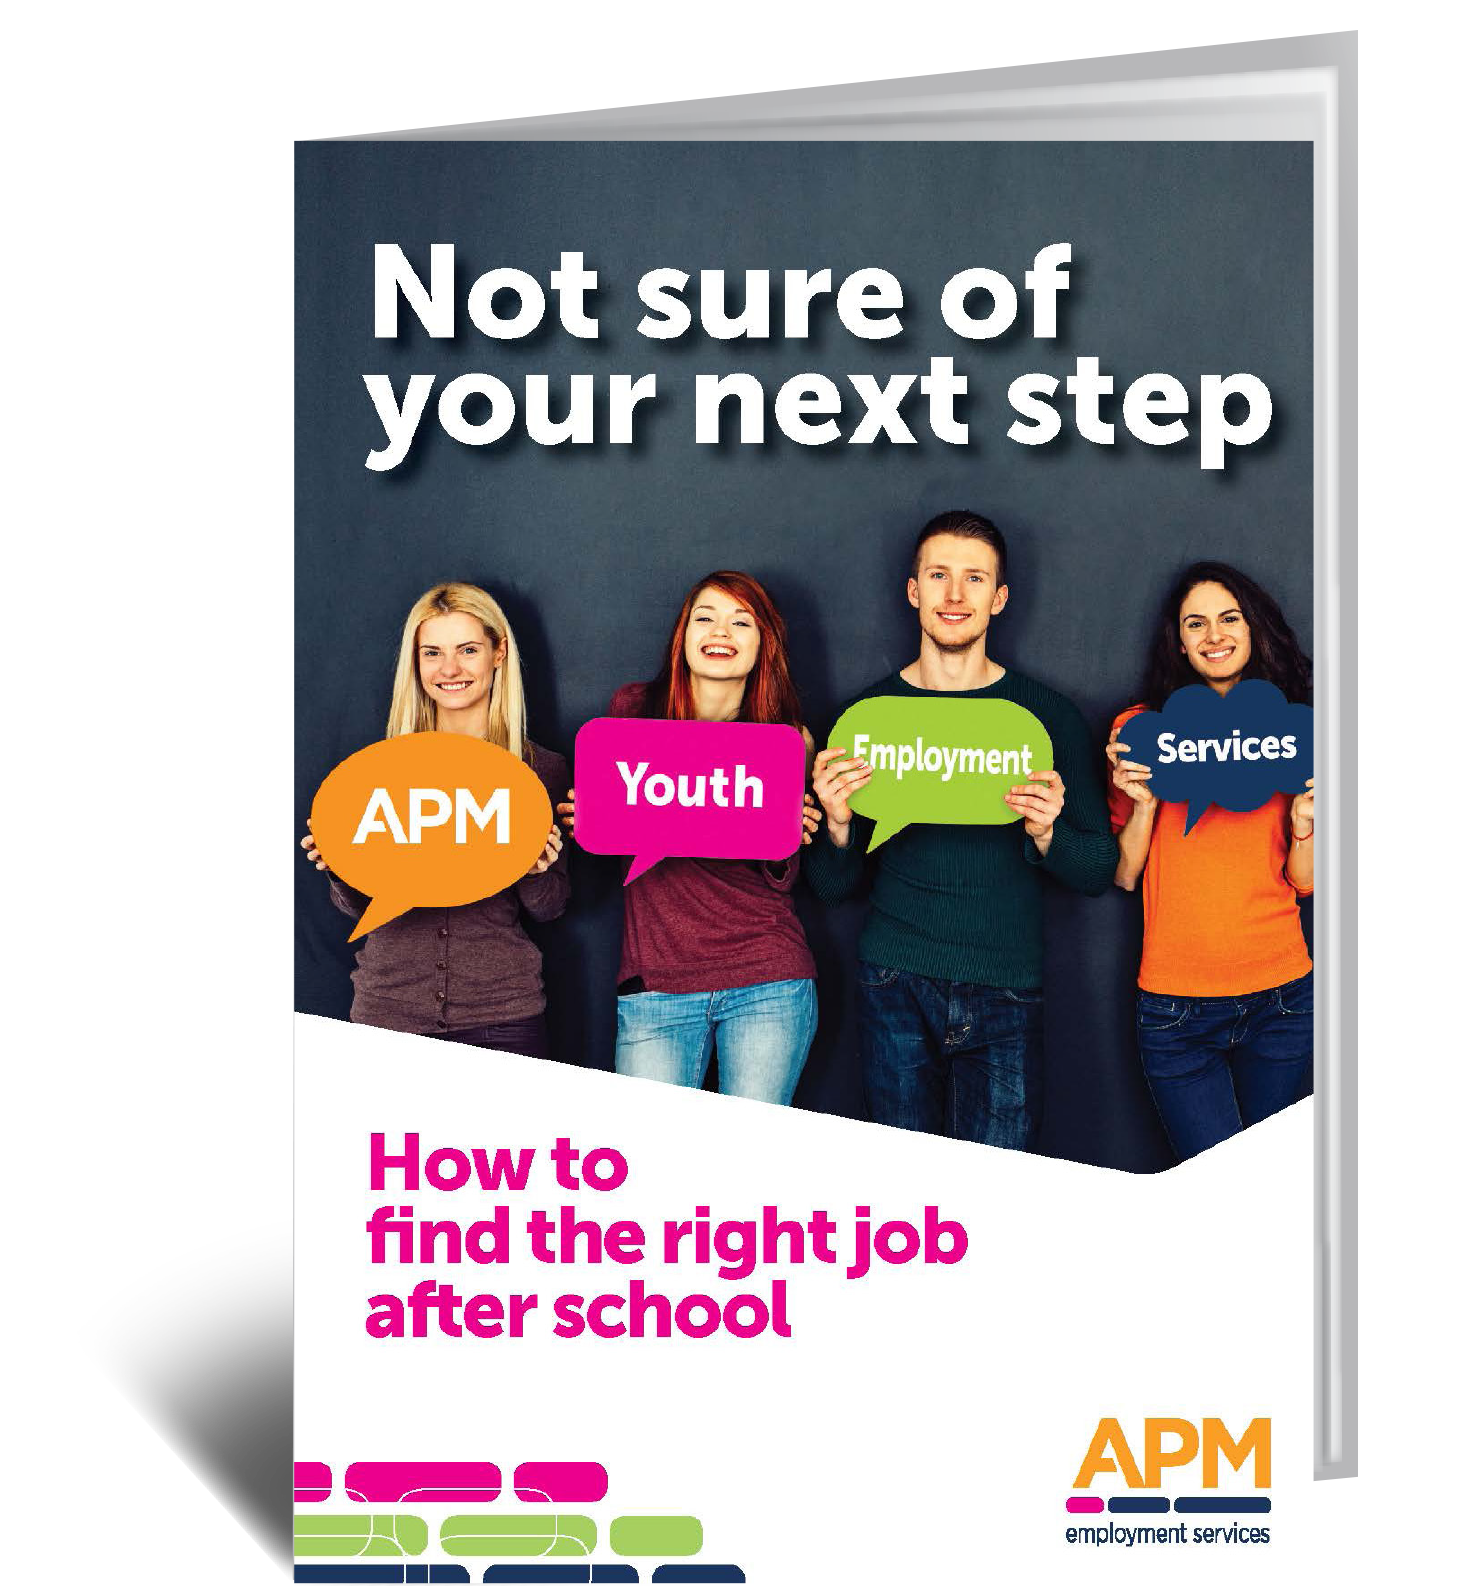 Download your guide to APM YES now and find out more on getting your first job when you leave school image